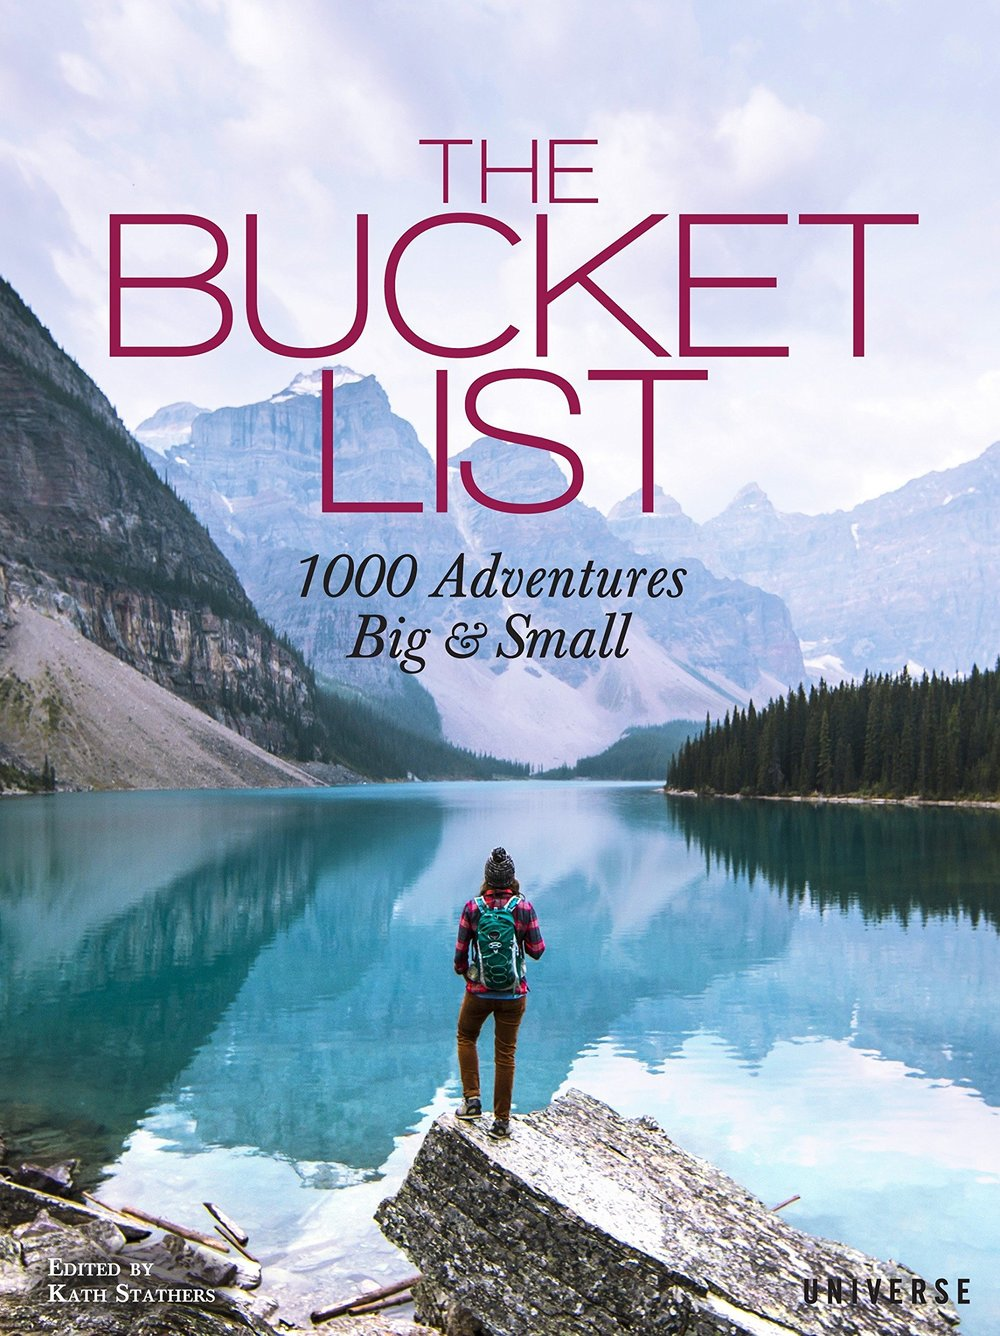 The Bucket List: 1000 Adventures Big & Small Hardcover by Kath Stathers